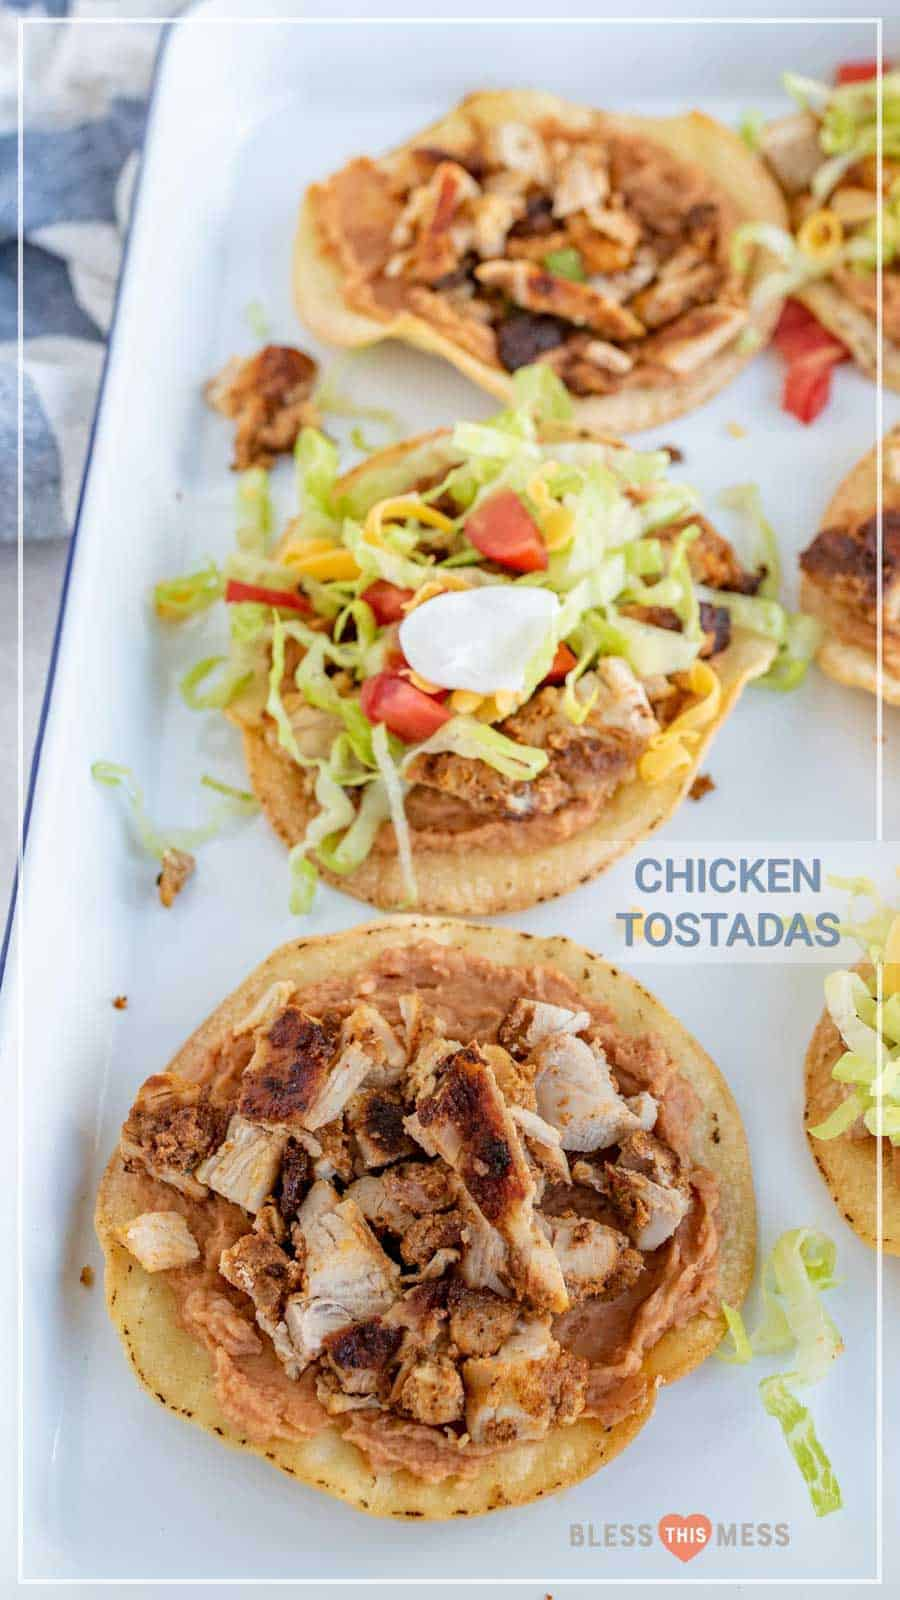 The best chicken tostadas take only 30 minutes to make, including simple baked tostada shells, and the whole family will love them. They come together quickly and they're bursting with flavor, which is kind of the best thing ever when it comes to weeknight meals. #tostadas #chickentostadas #tacos #texmex #mexicanfood #tostadarecipe